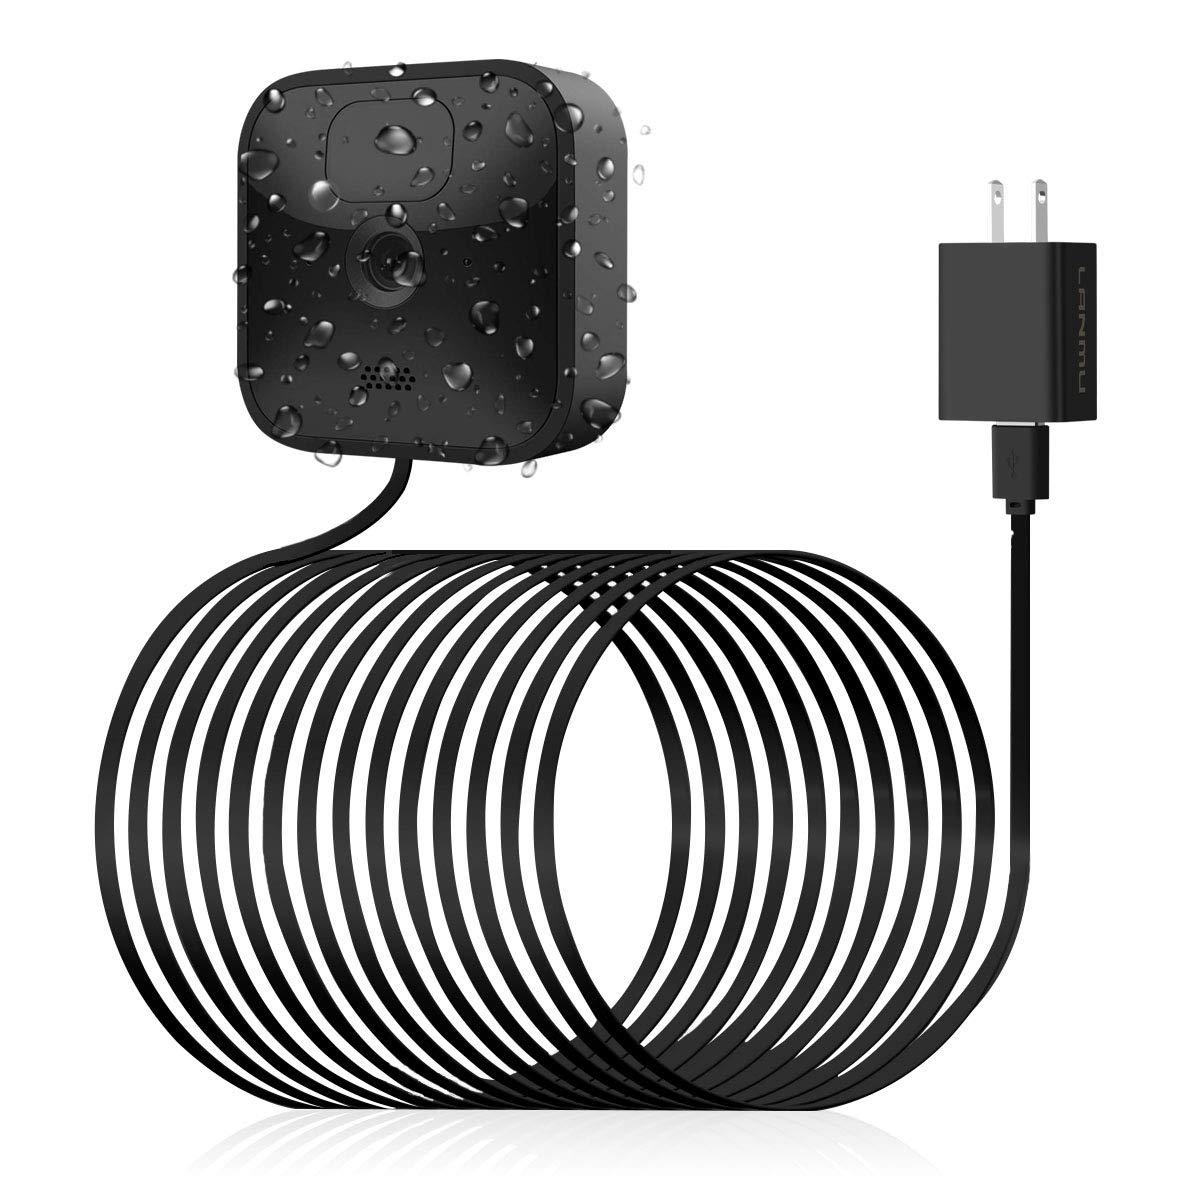 LANMU Weatherproof Power Cable Compatible with Blink Outdoor, Blink XT2/XT, Outdoor Charging Cable with Power Adapter,Continuous Power Supply(26ft)